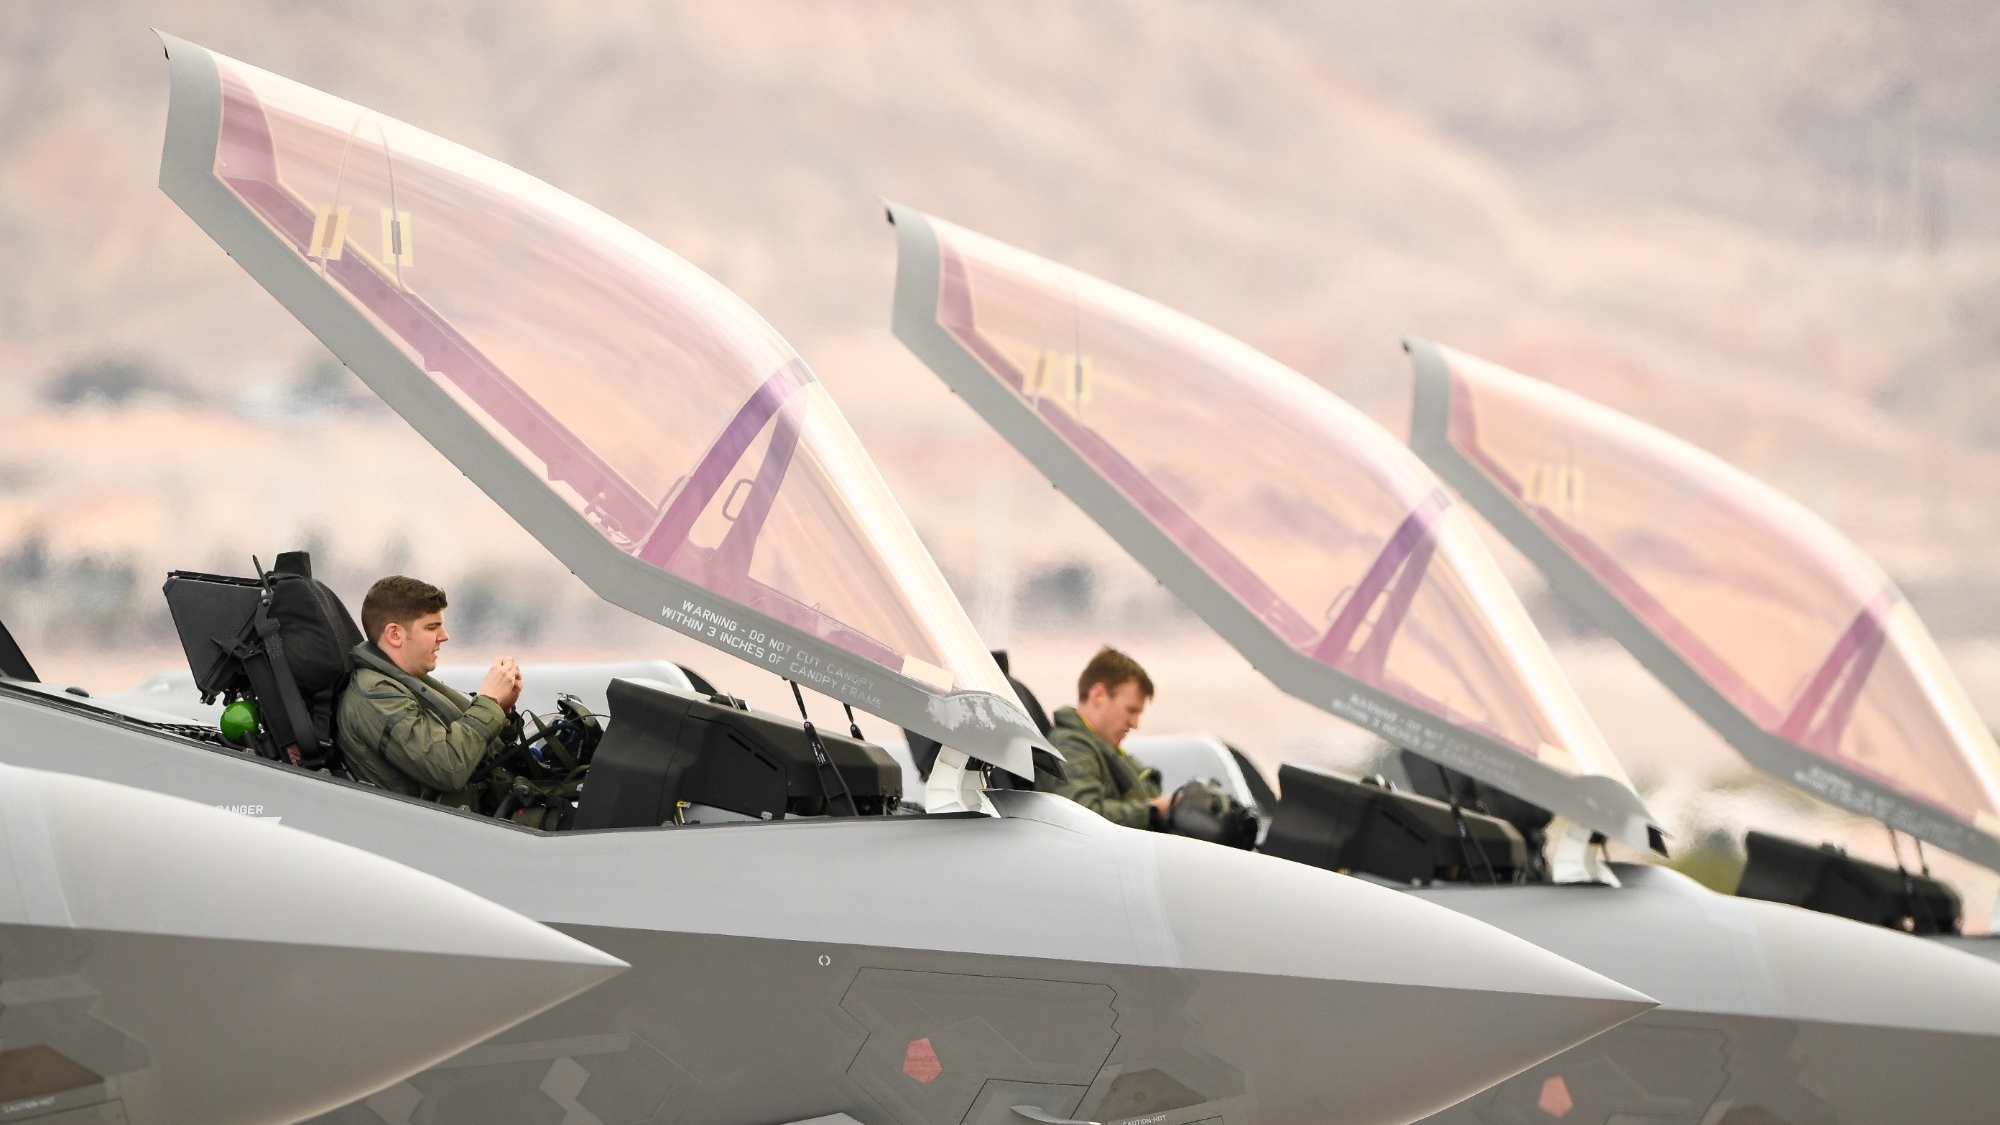 Pilots from the 388th Fighter Wing's 4th Fighter Squadron participating in Red Flag 19-1 at Nellis AFB, Nevada, January 31, 2019, photo by R. Nial Bradshaw/U.S. Air Force